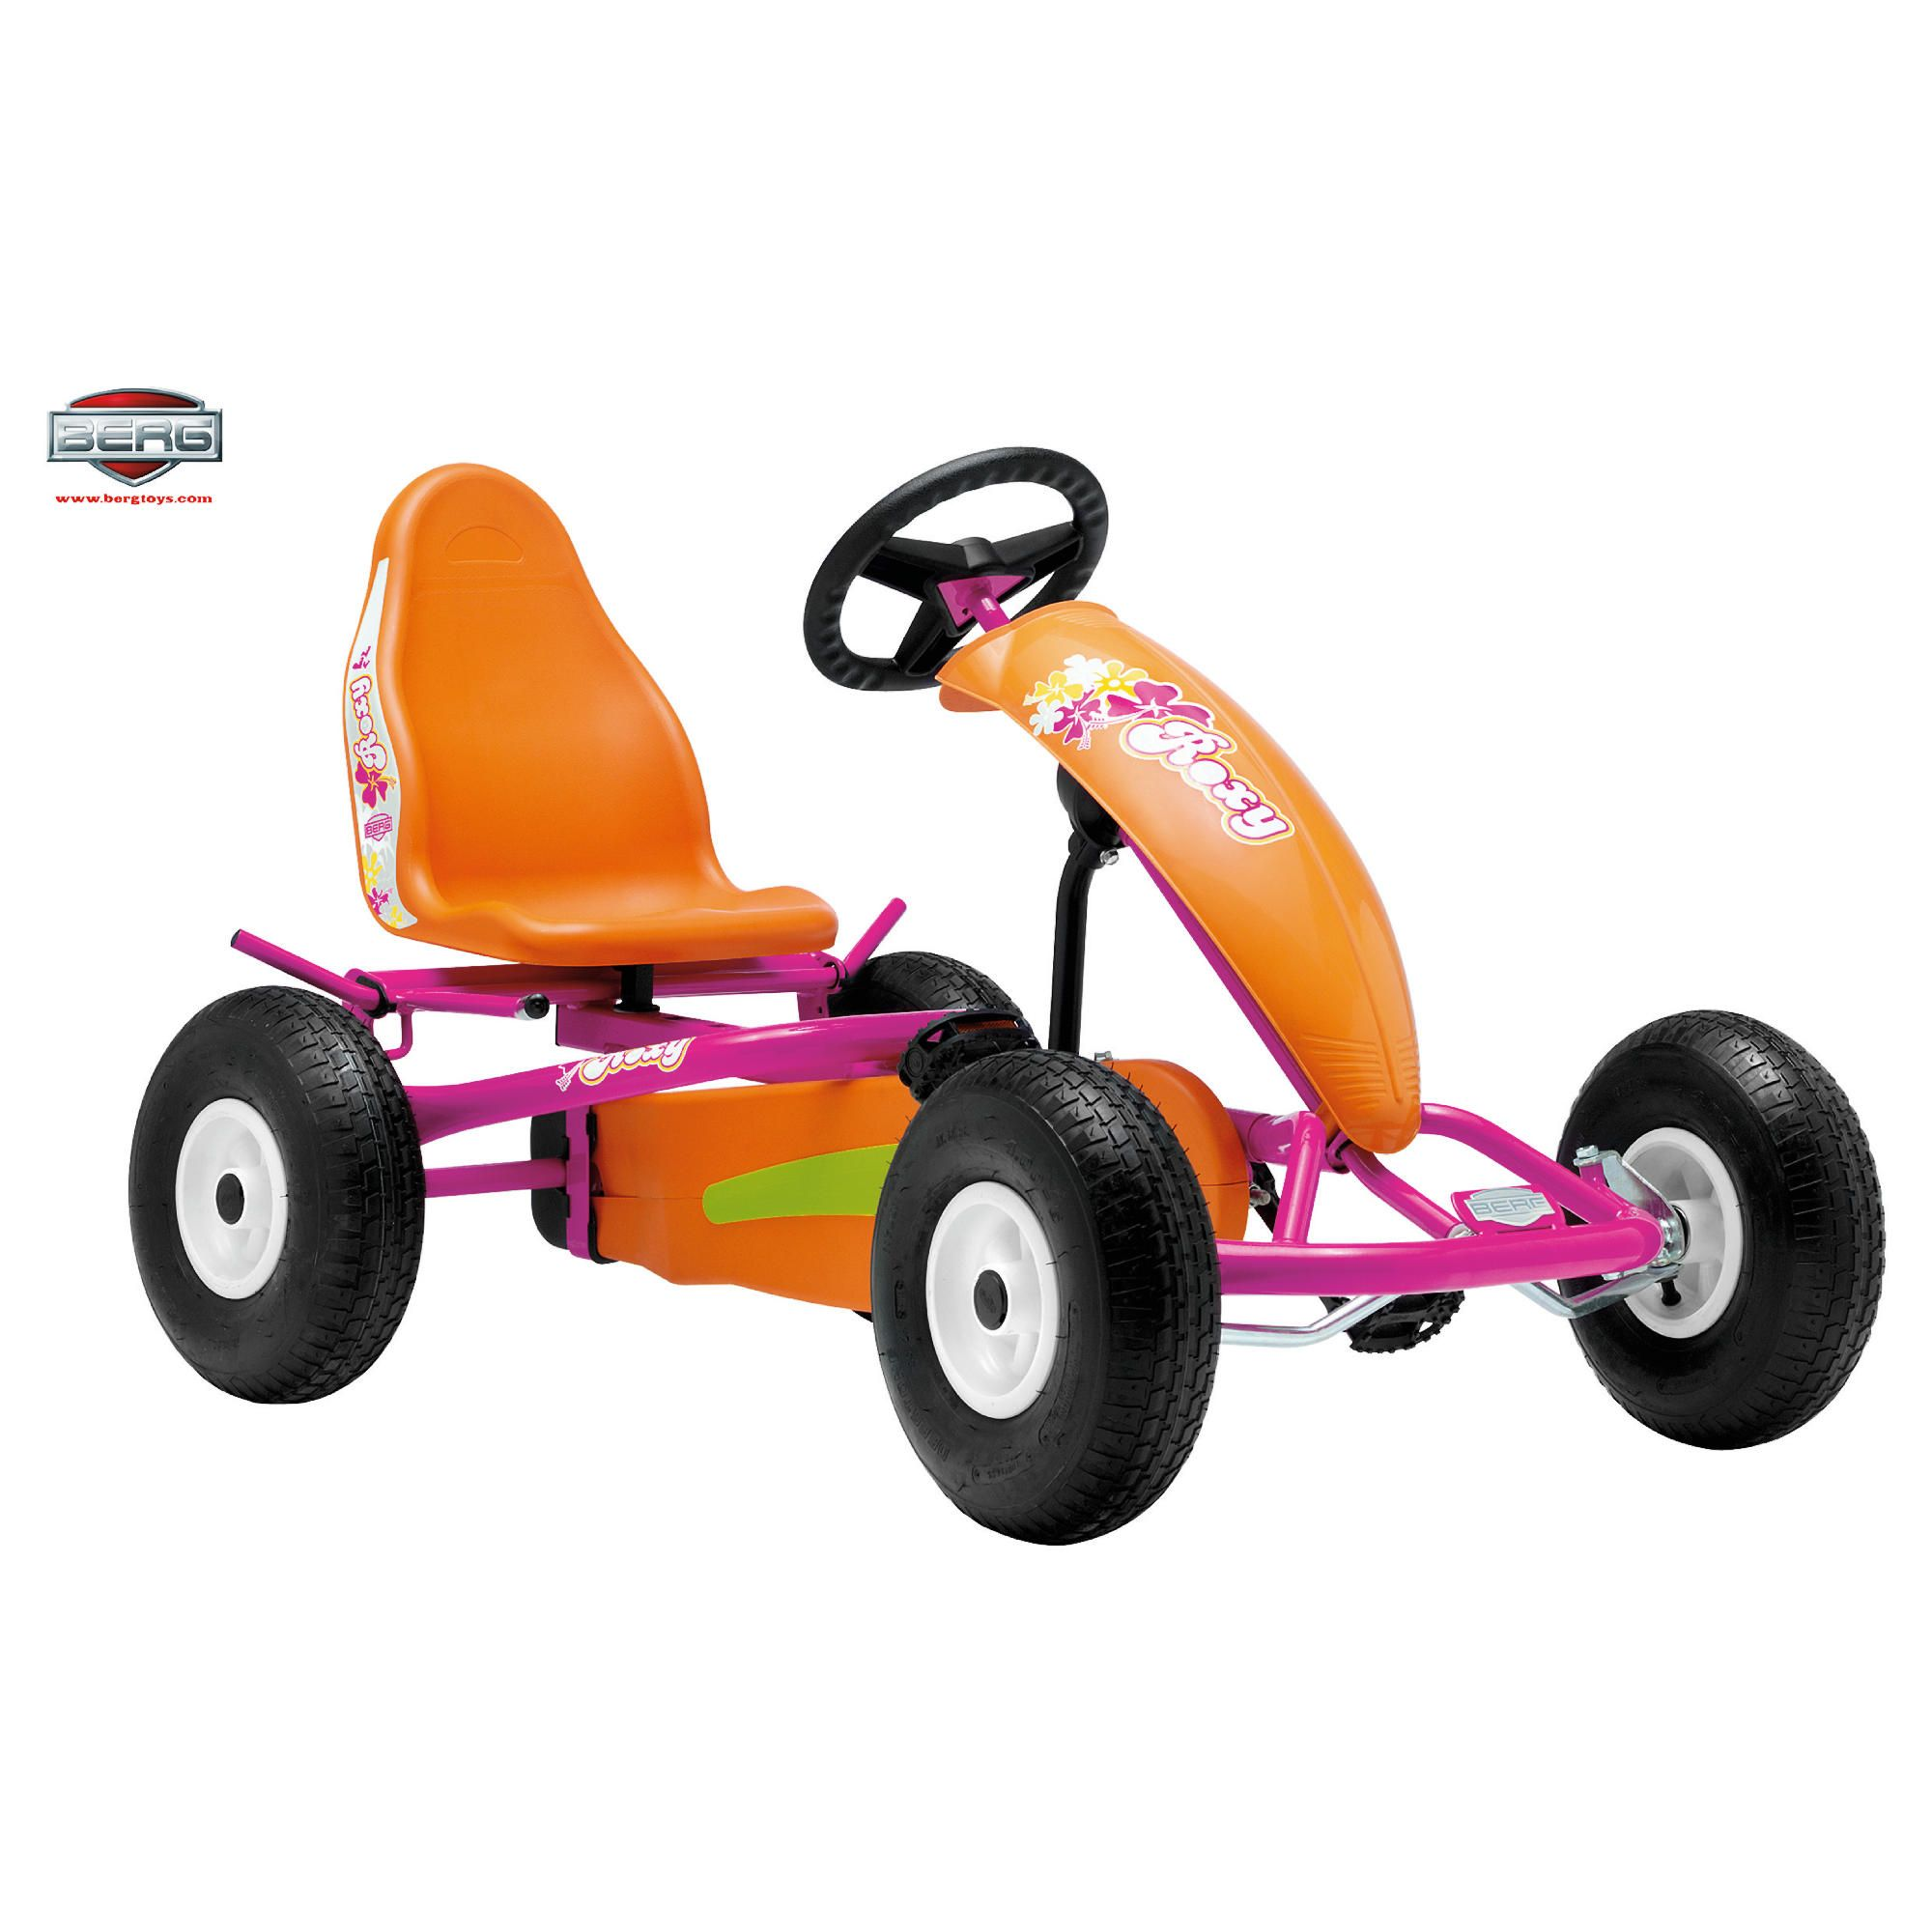 Berg Roxy Af Go Kart at Tesco Direct